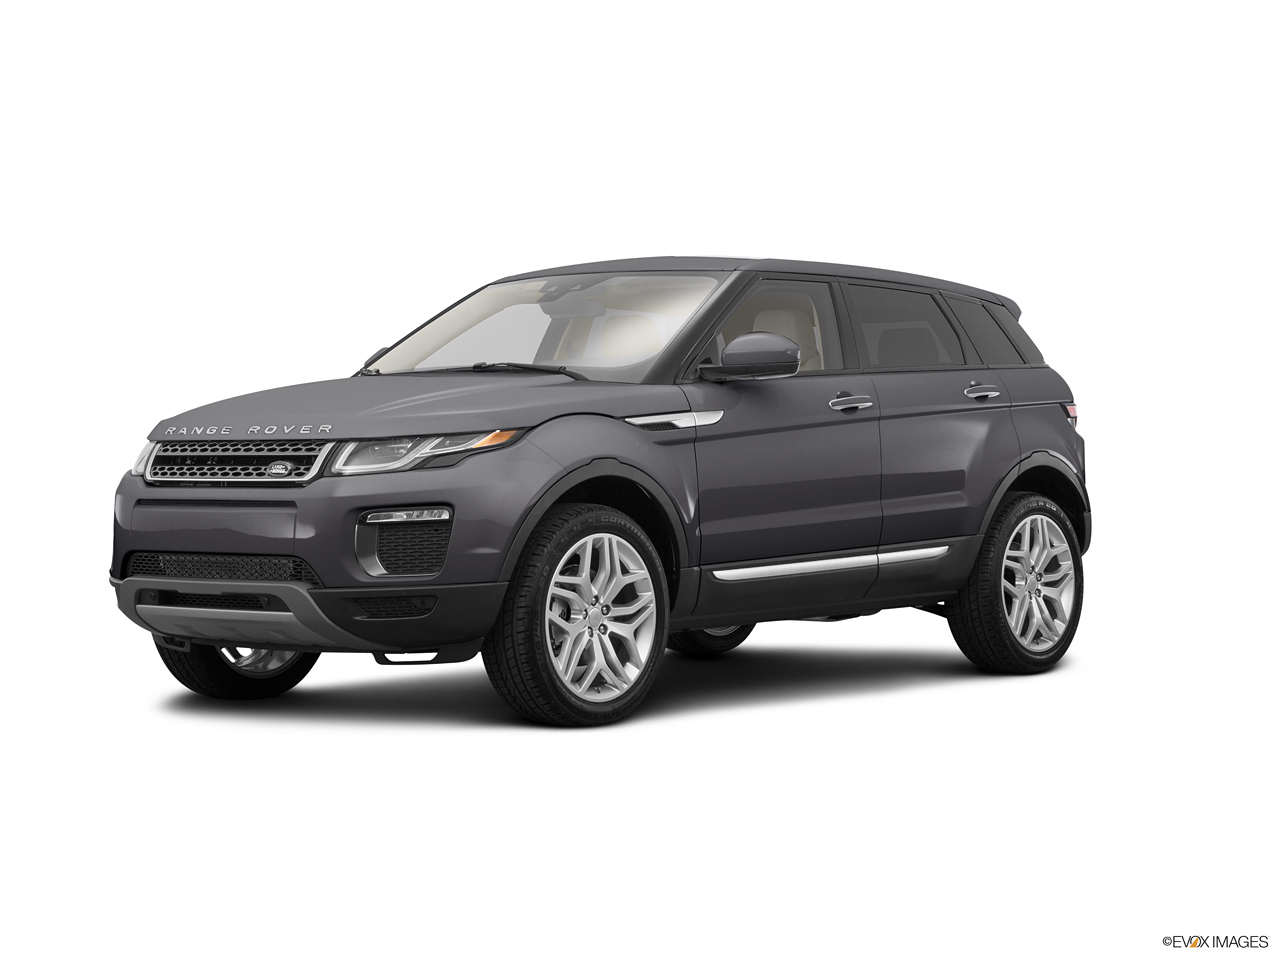 land rover range rover evoque 2016 pure in qatar new car prices specs reviews photos. Black Bedroom Furniture Sets. Home Design Ideas